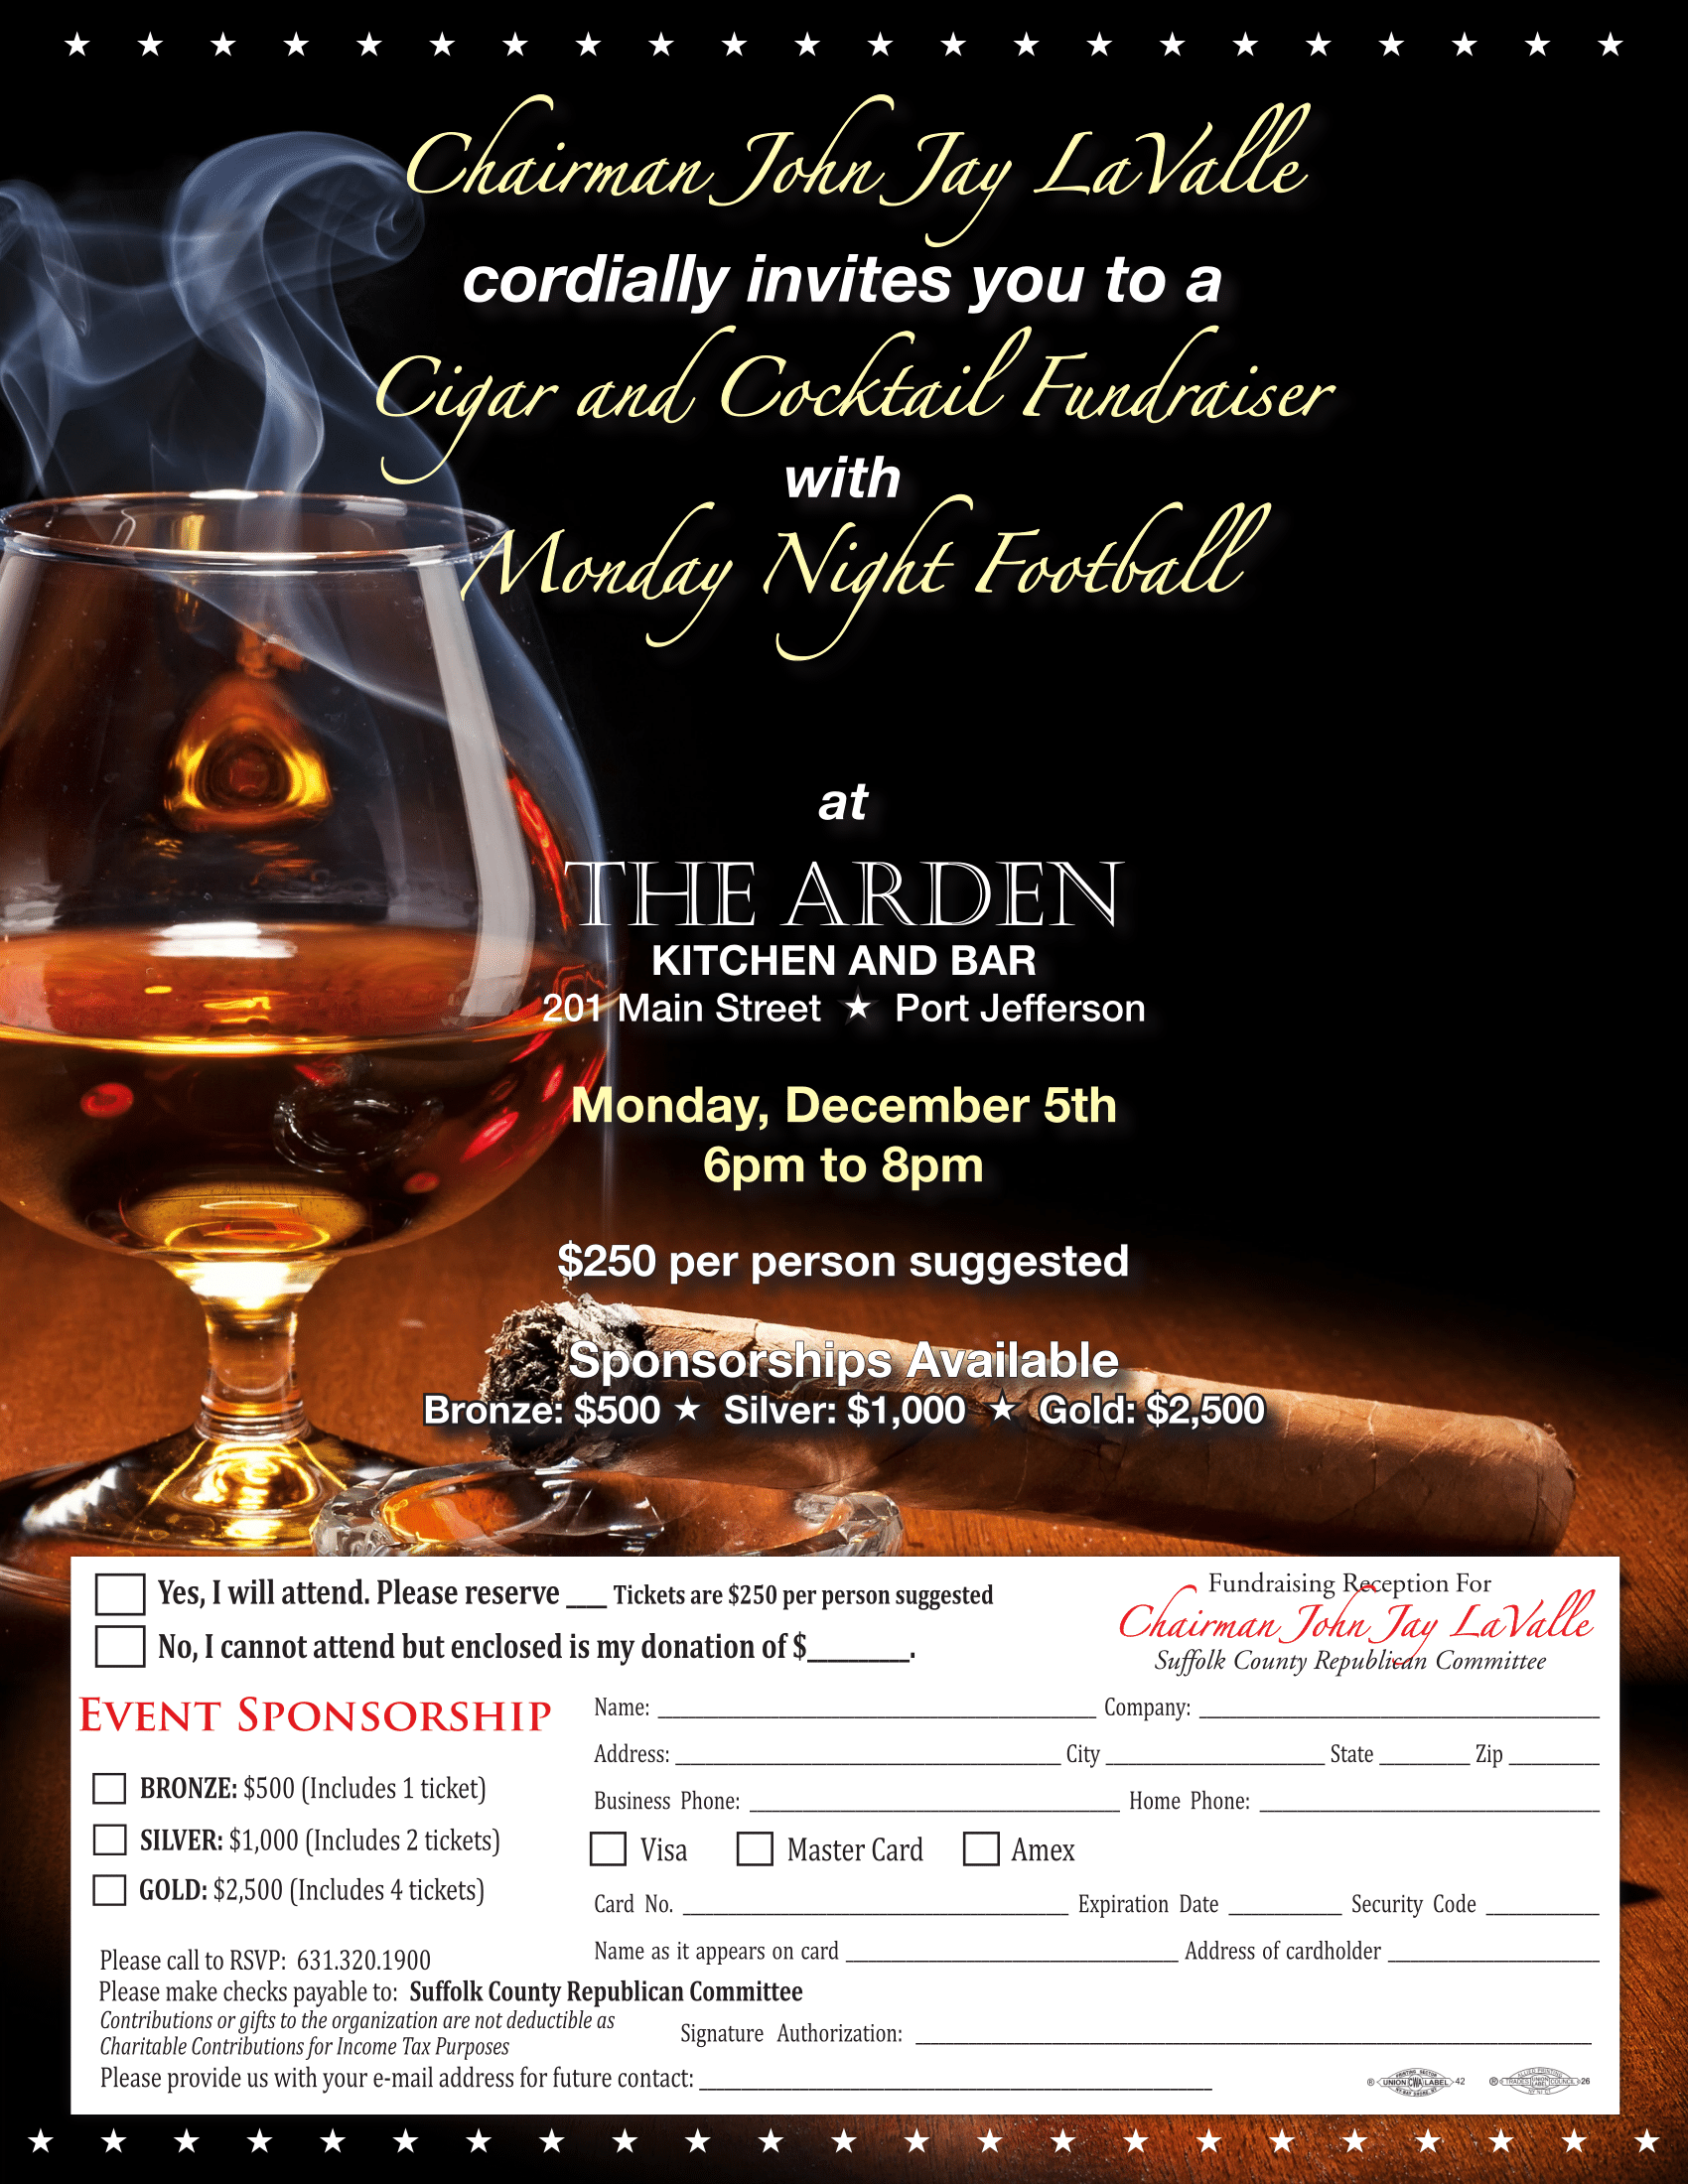 Cigar and Cocktail Fundraiser with Monday Night Football